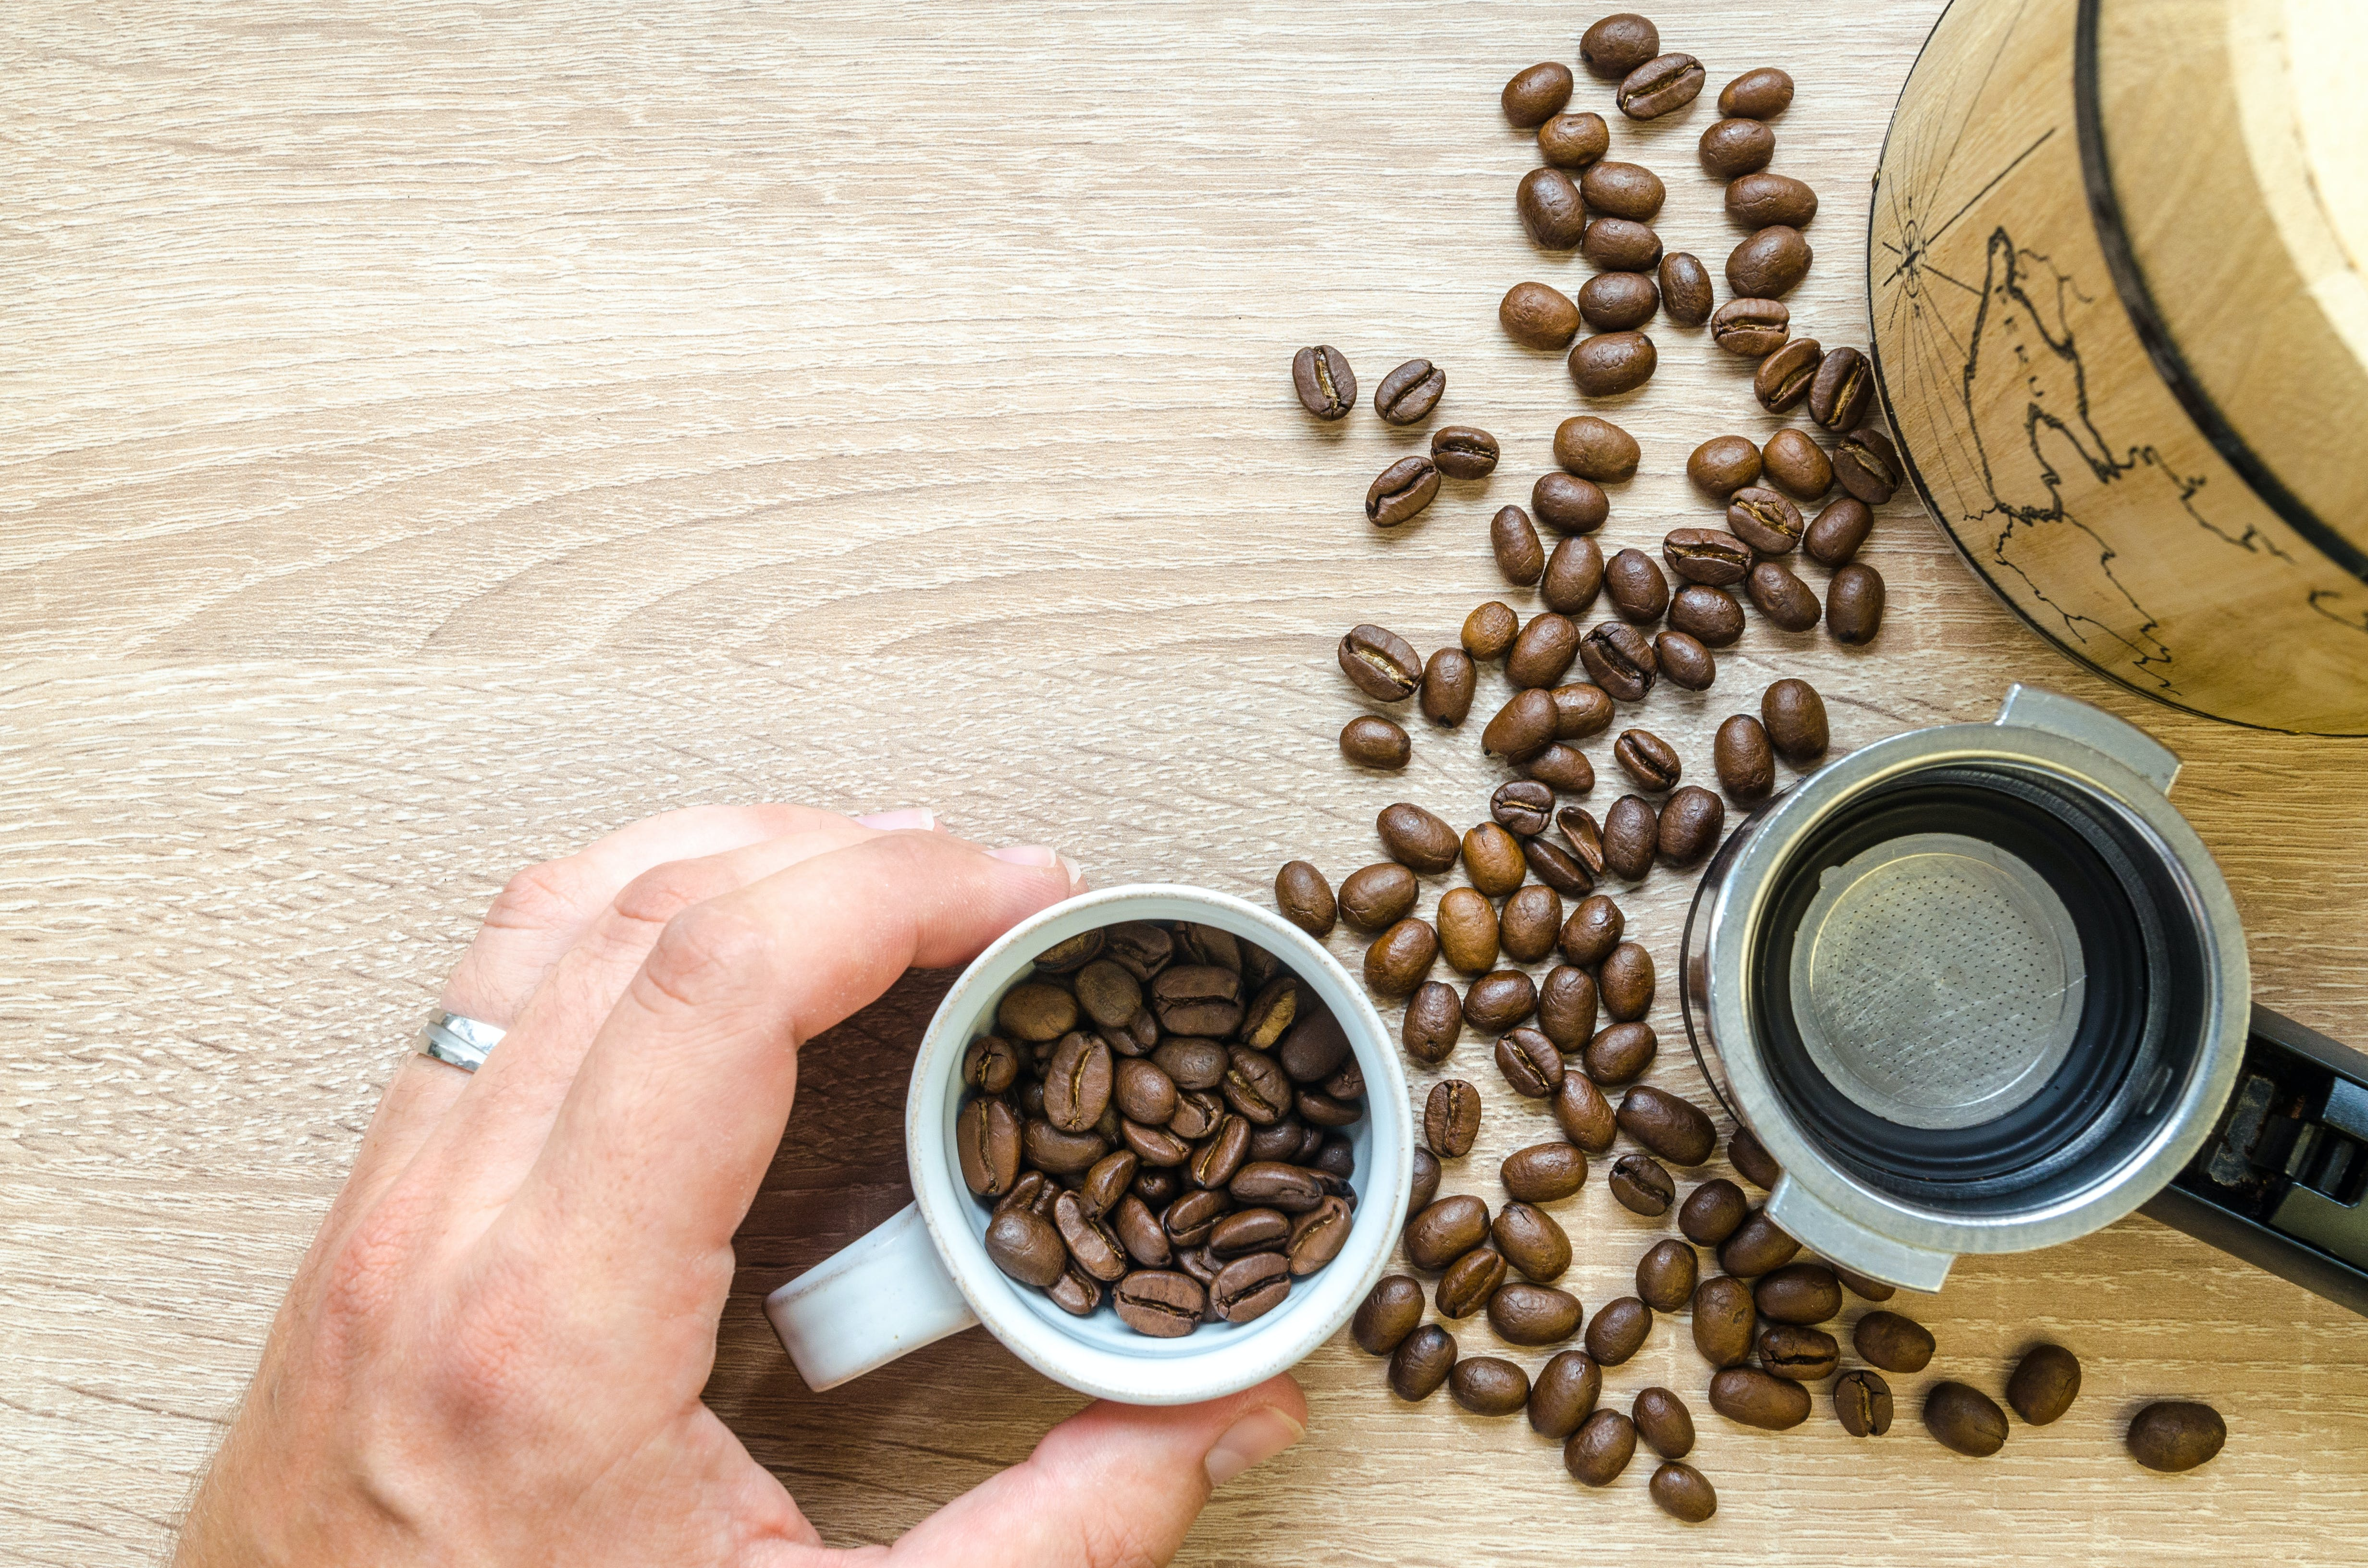 Person Holding Mug Filled With Coffee Beans